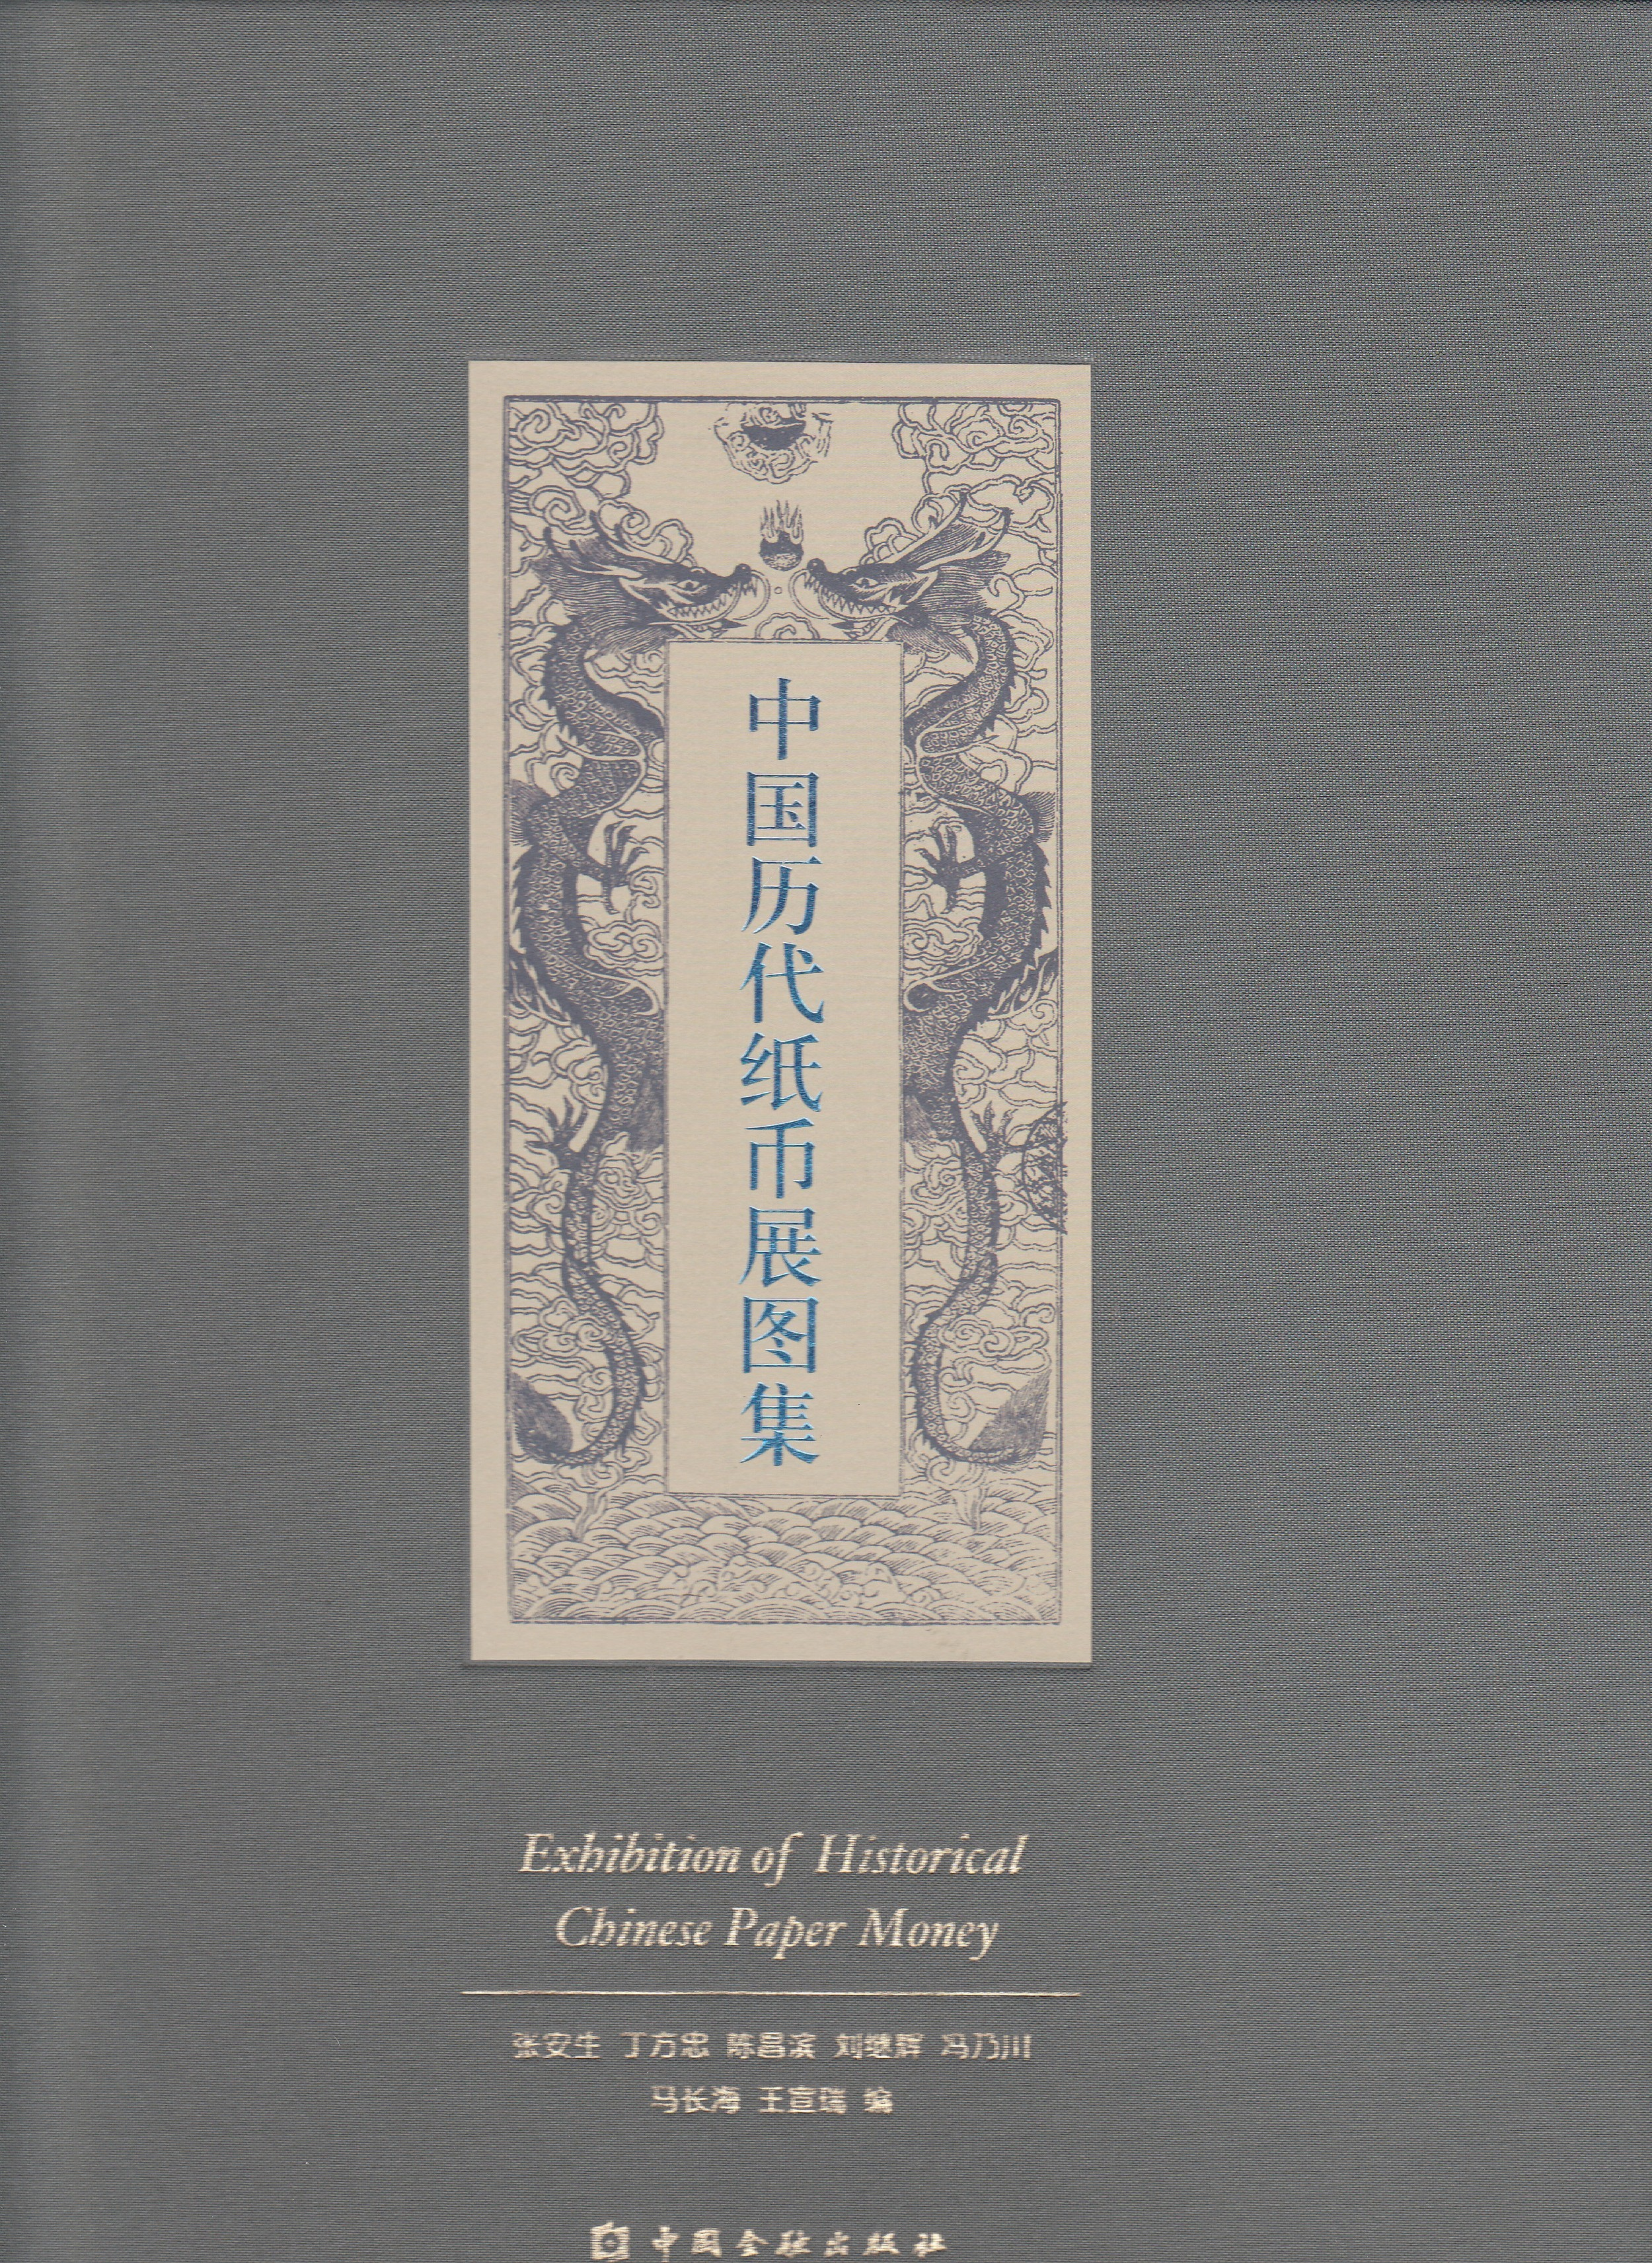 F2034, Exhibition of Historical Chinese Paper Money (2012)